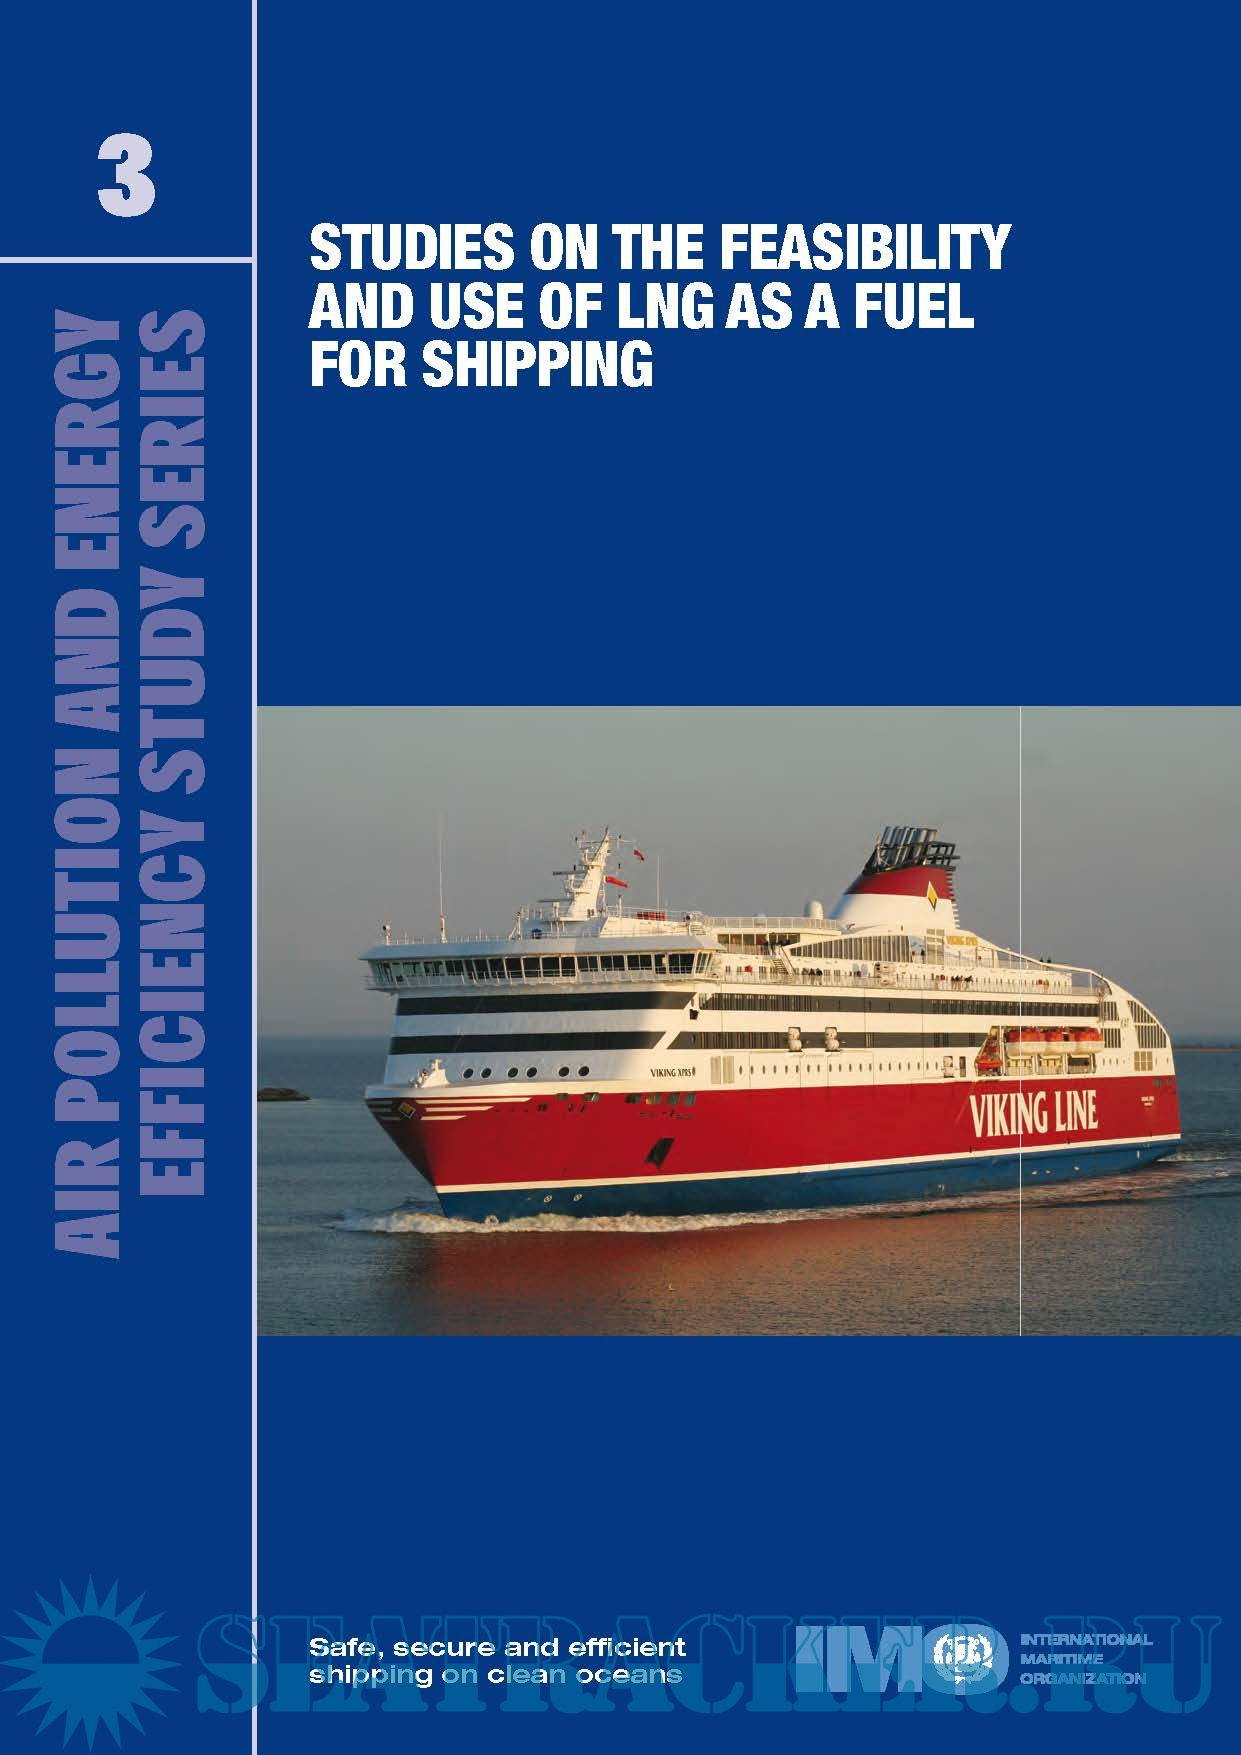 Studies on the feasibility and use of LNG as a fuel for shipping